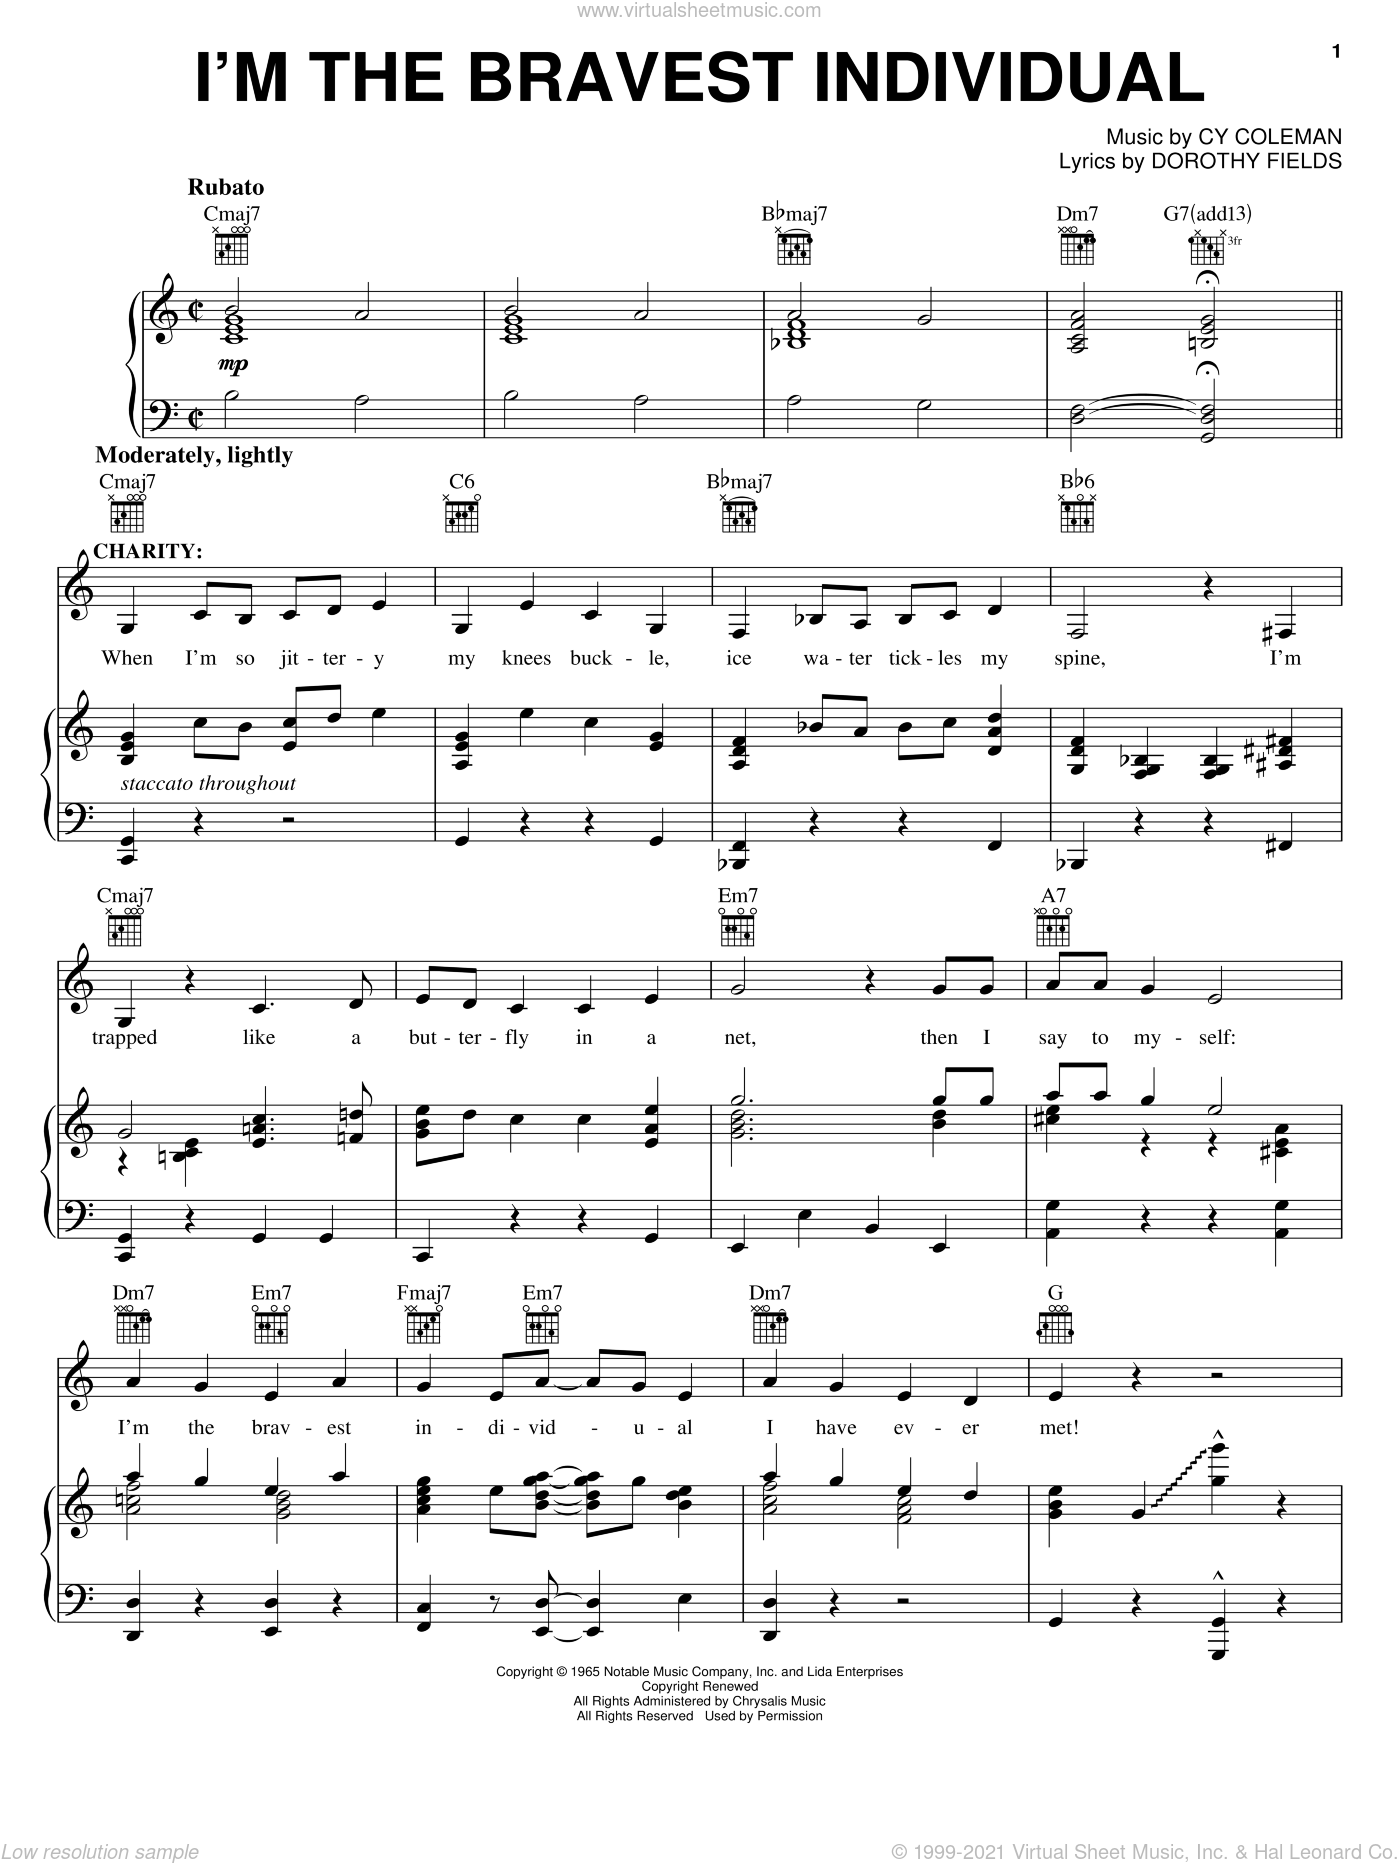 I'm The Bravest Individual sheet music for voice, piano or guitar by Cy Coleman, Sweet Charity (Musical) and Dorothy Fields, intermediate skill level